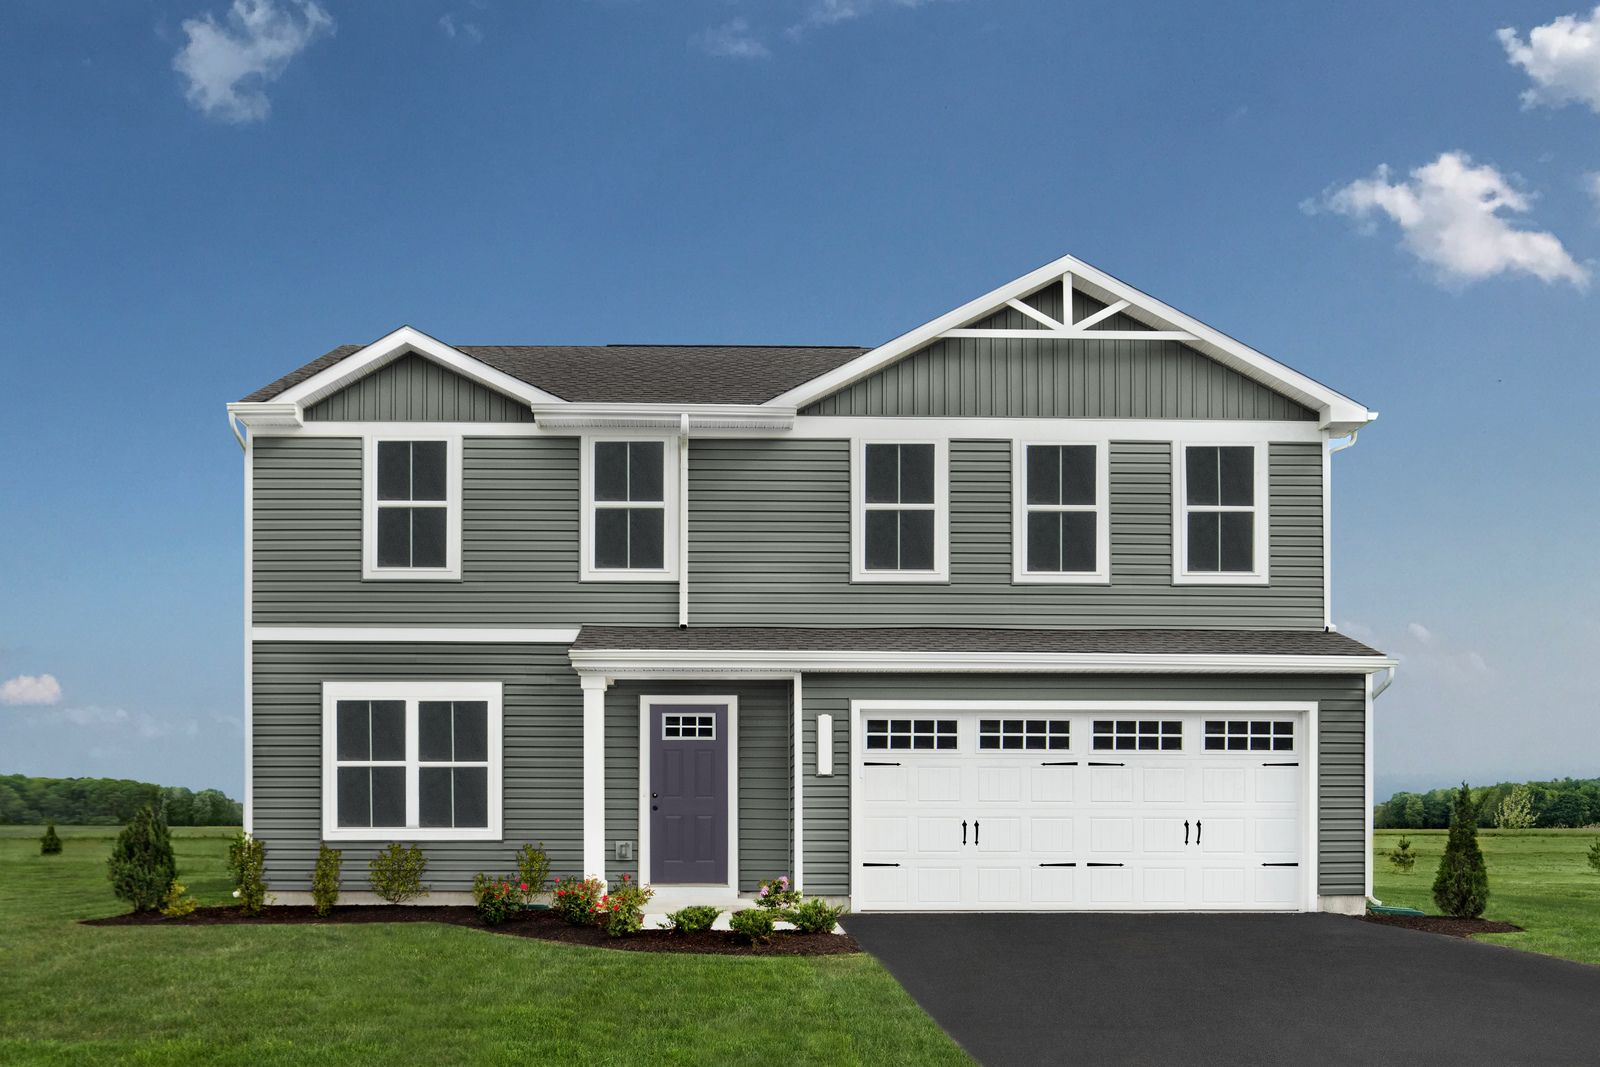 AFFORDABLE SINGLE FAMILY HOMES IN FUNKSTOWN:Now Open for Sales to VIPs starting fromthe low $300s! Own a new single family home for less than rent. Only 5 min. to I-70, 10 min. to Hagerstown, and 30 min. to Frederick.Join the VIP list today.